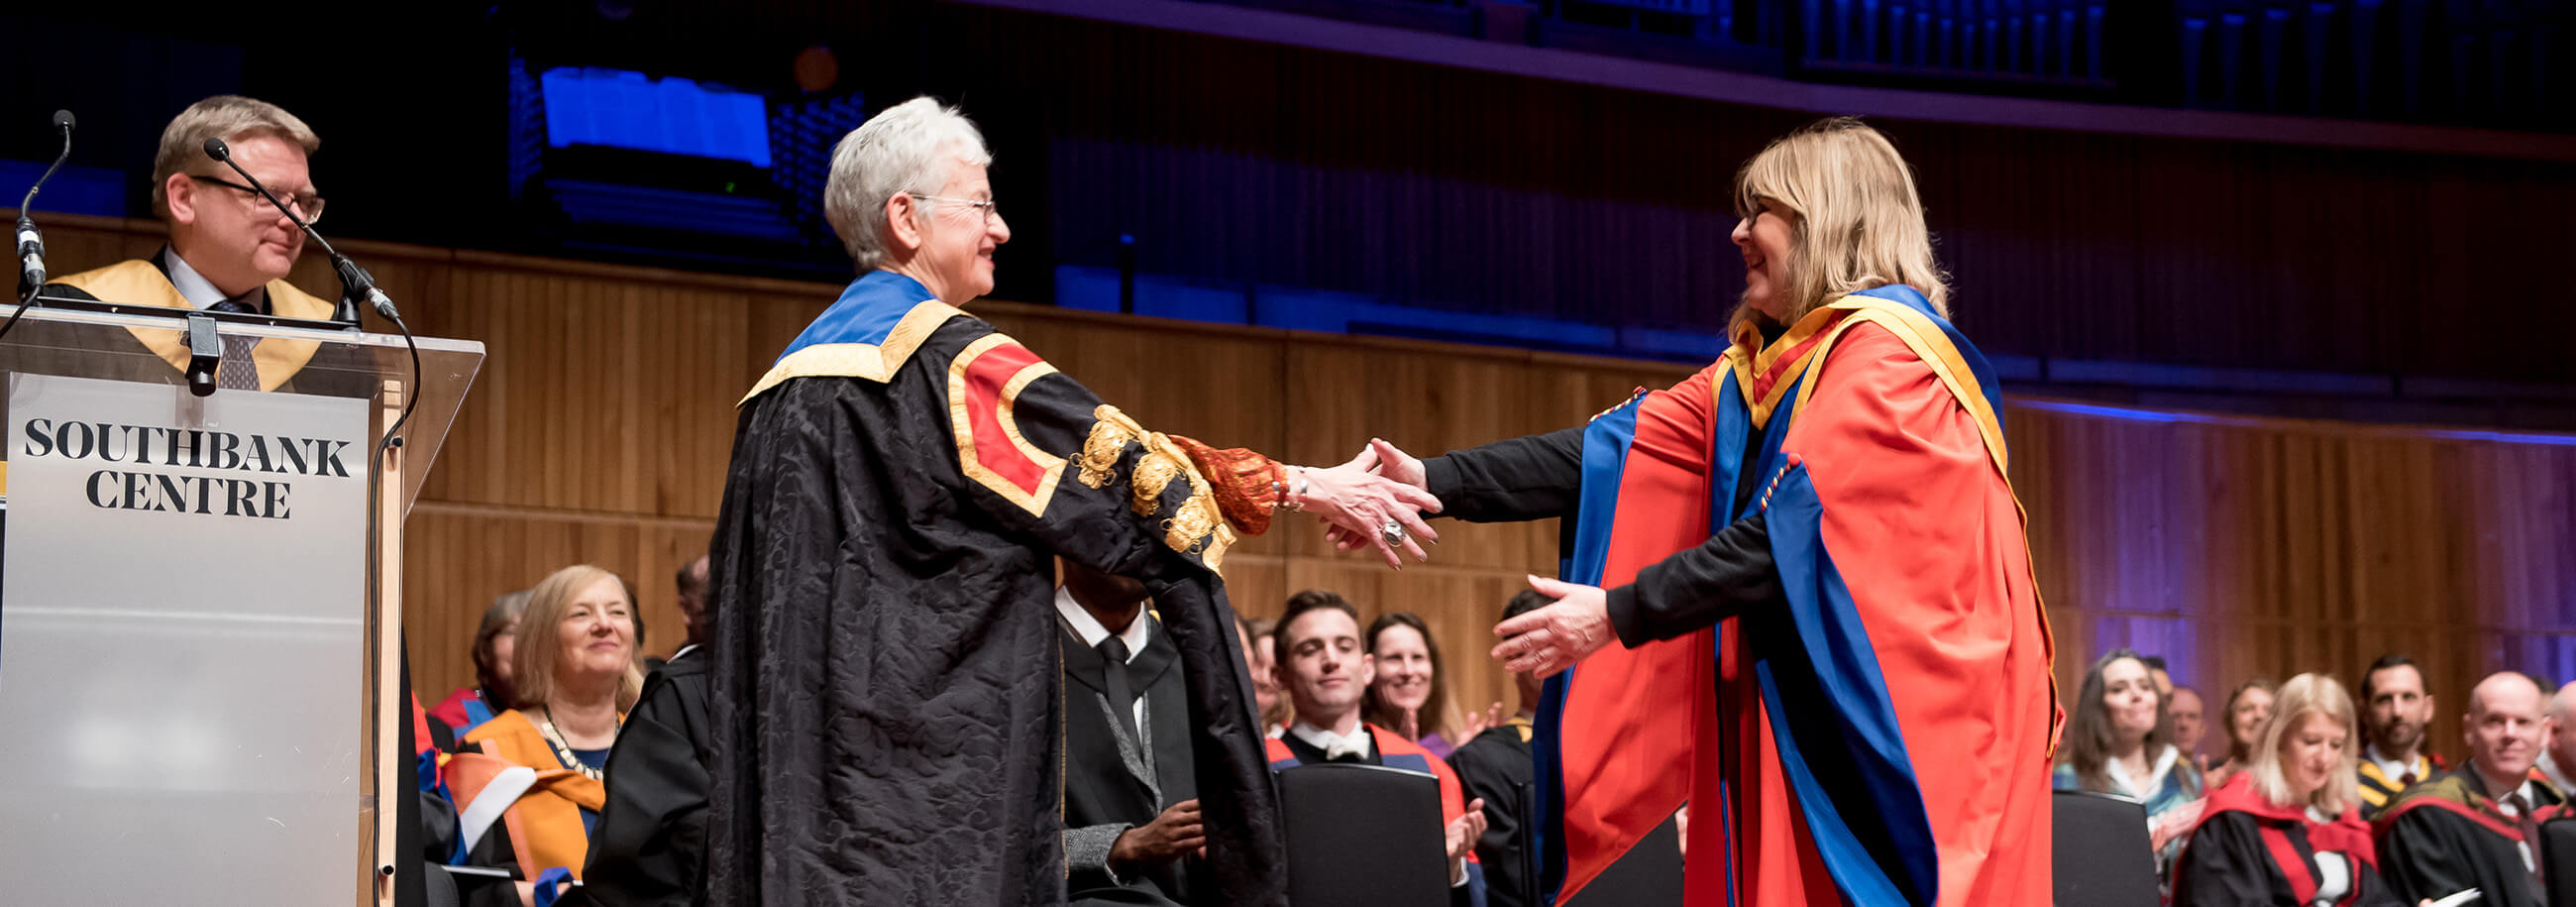 Image -  Honorary Degrees